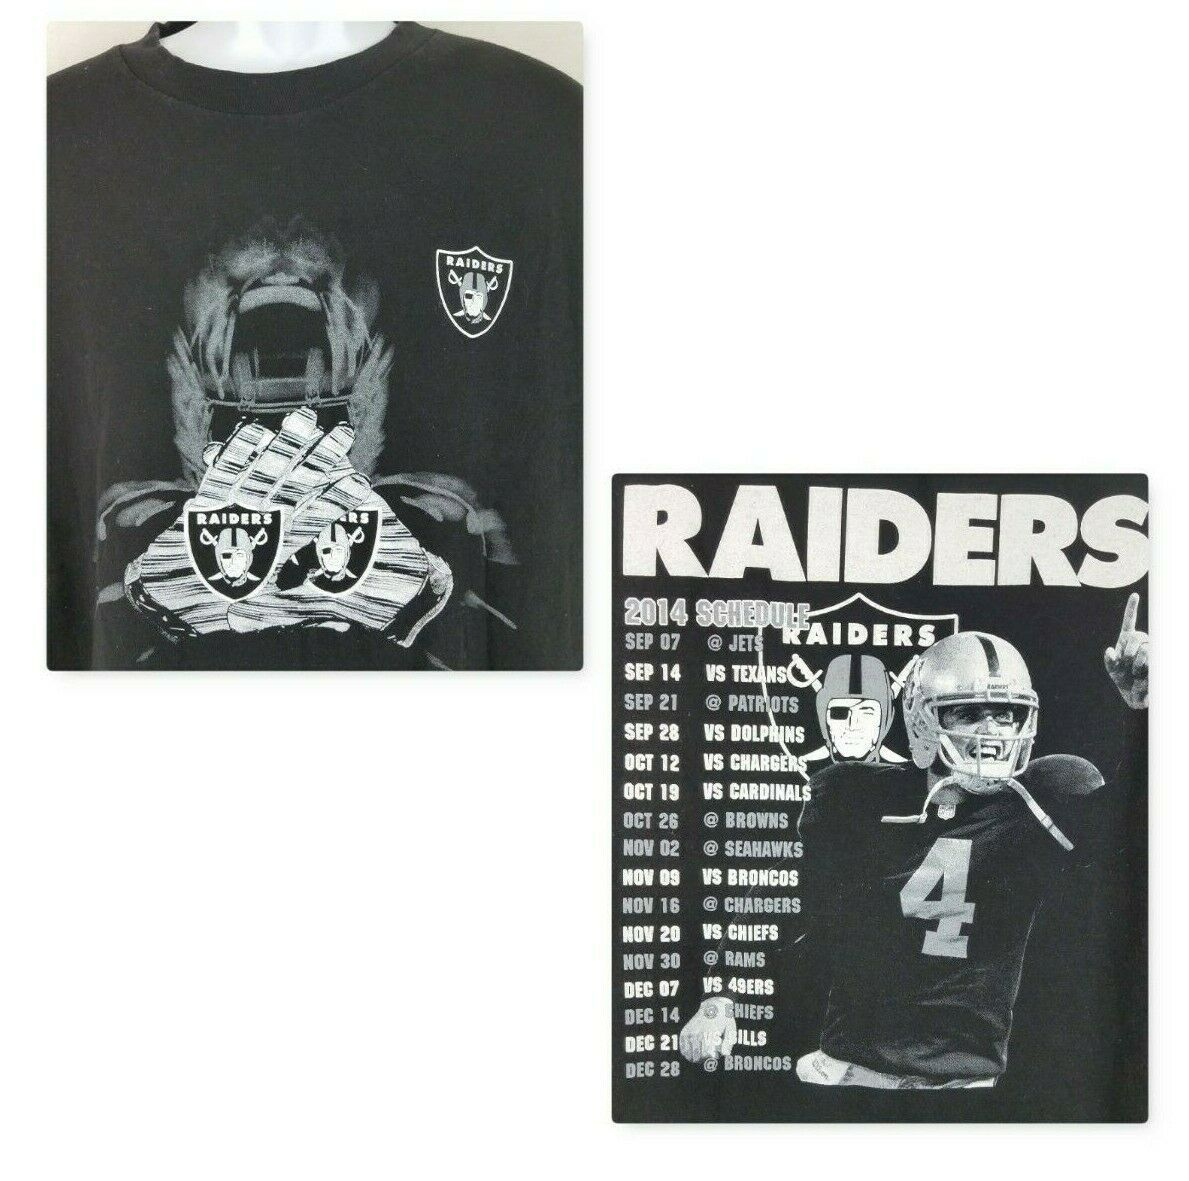 Oakland Raiders 2014 Schedule T Shirt 3XL Derek Carr Black White Alstyle Cotton - $20.43